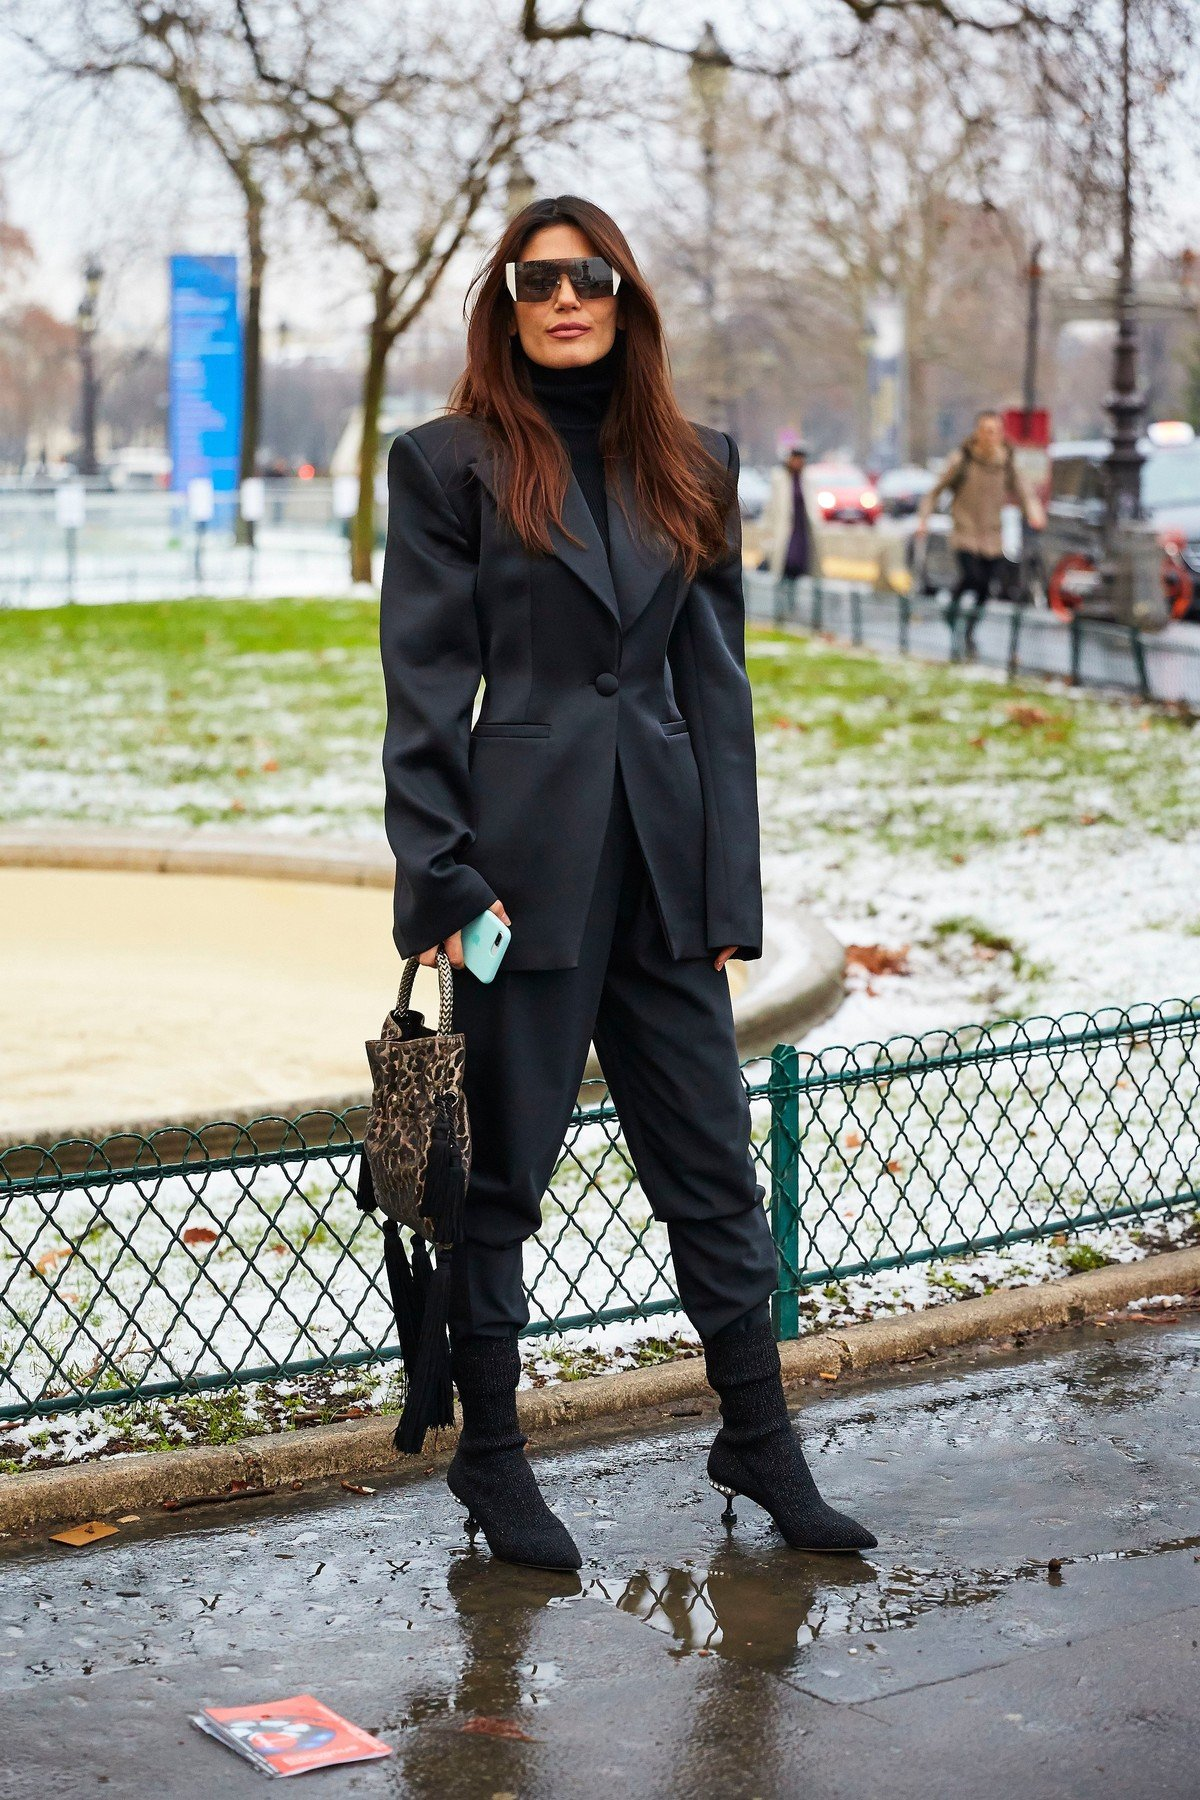 Street Style Street Style Spring Summer 2019, Haute Couture Fashion Week, Paris,  France - 22 Jan 2019, Image: 409461968, License: Rights-managed, Restrictions: , Model Release: no, Credit line: Profimedia, TEMP Rex Features